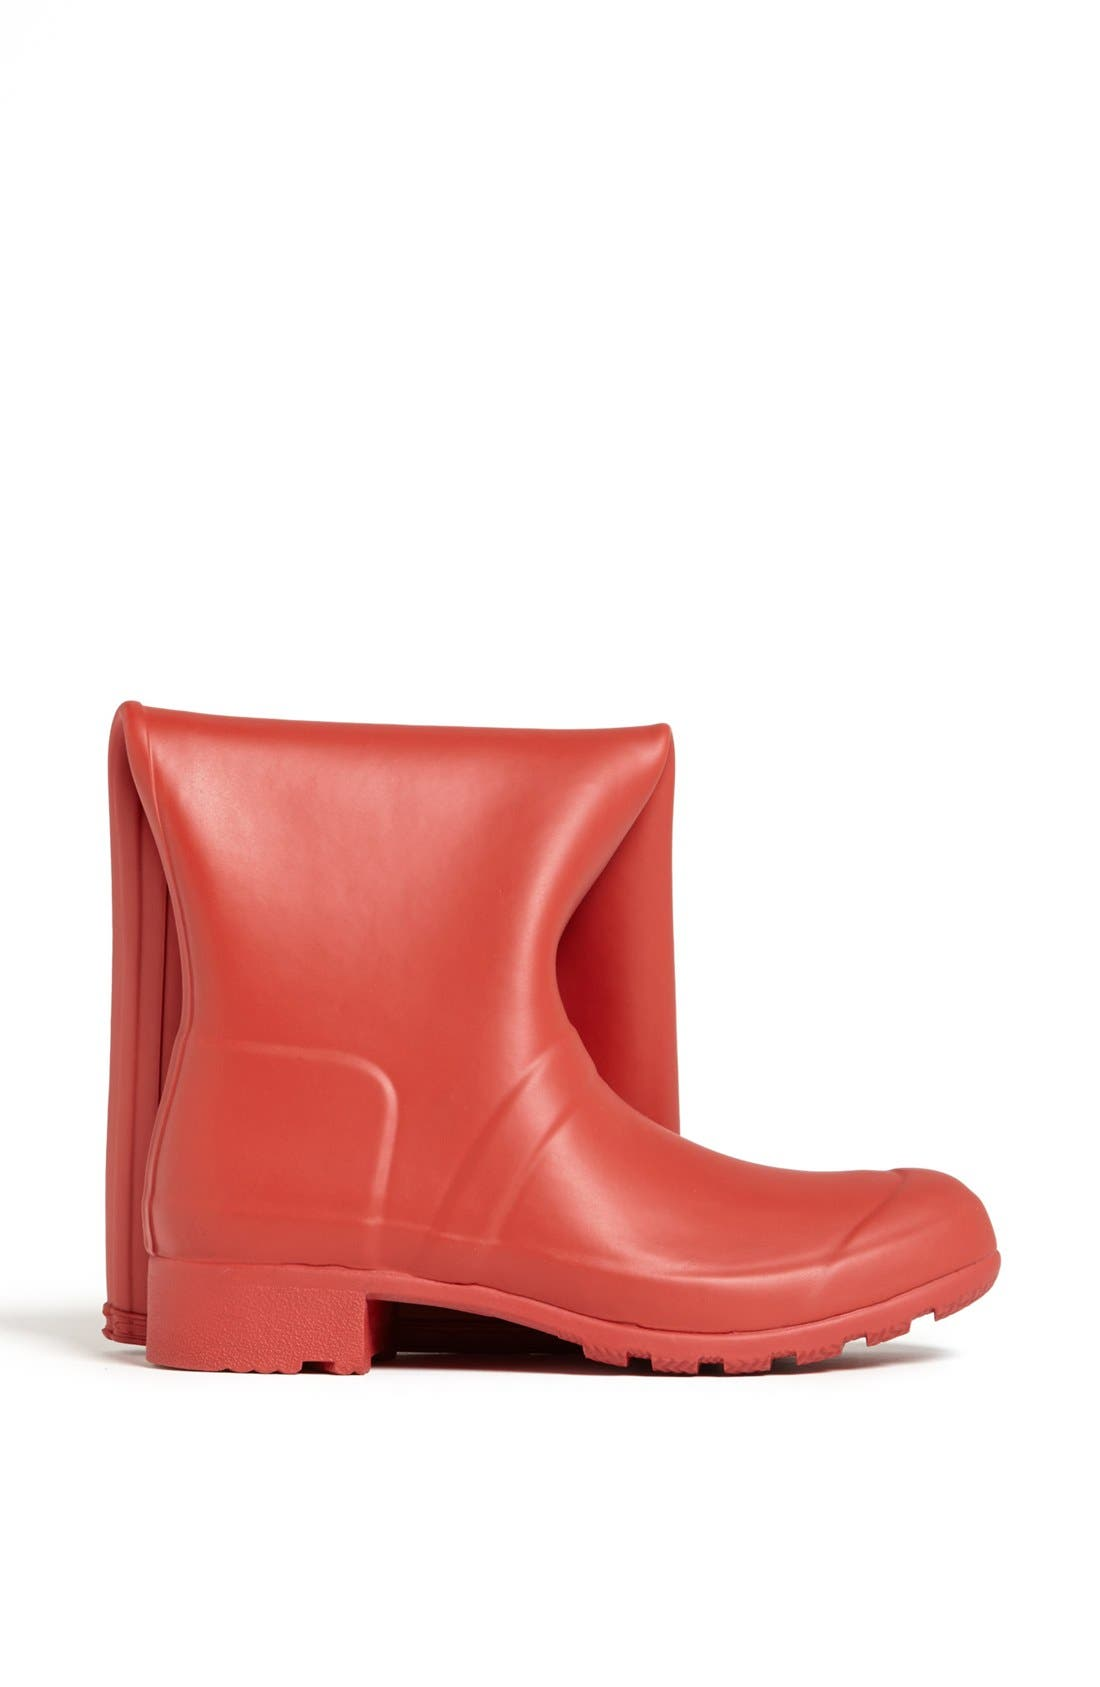 'Tour' Packable Rain Boot,                             Alternate thumbnail 147, color,